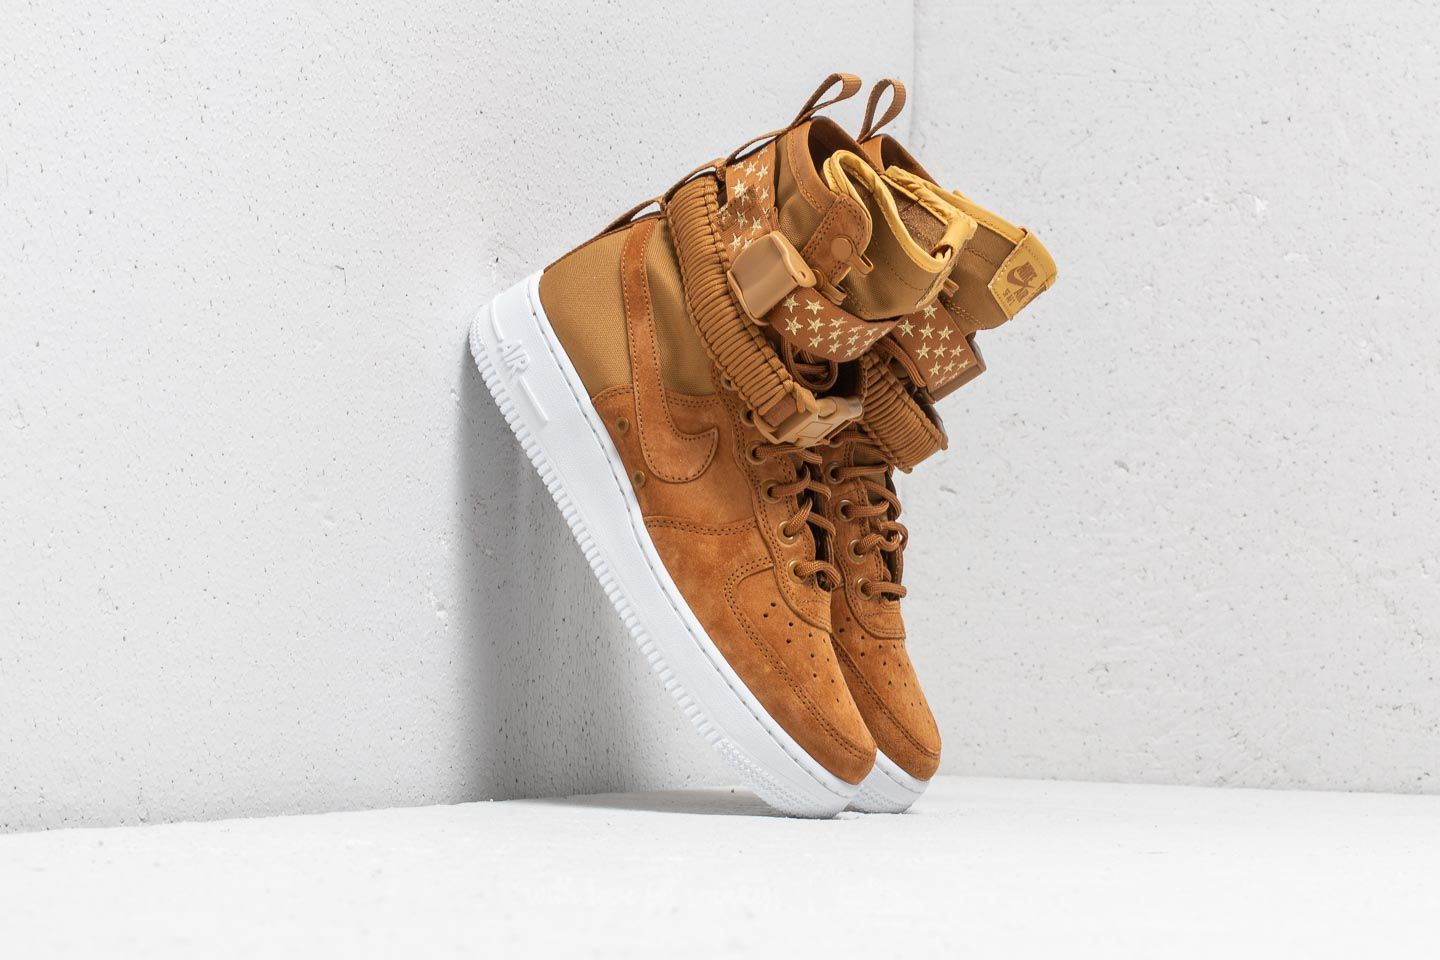 Nike W SF Air Force 1 Muted Bronze/ Muted Bronze